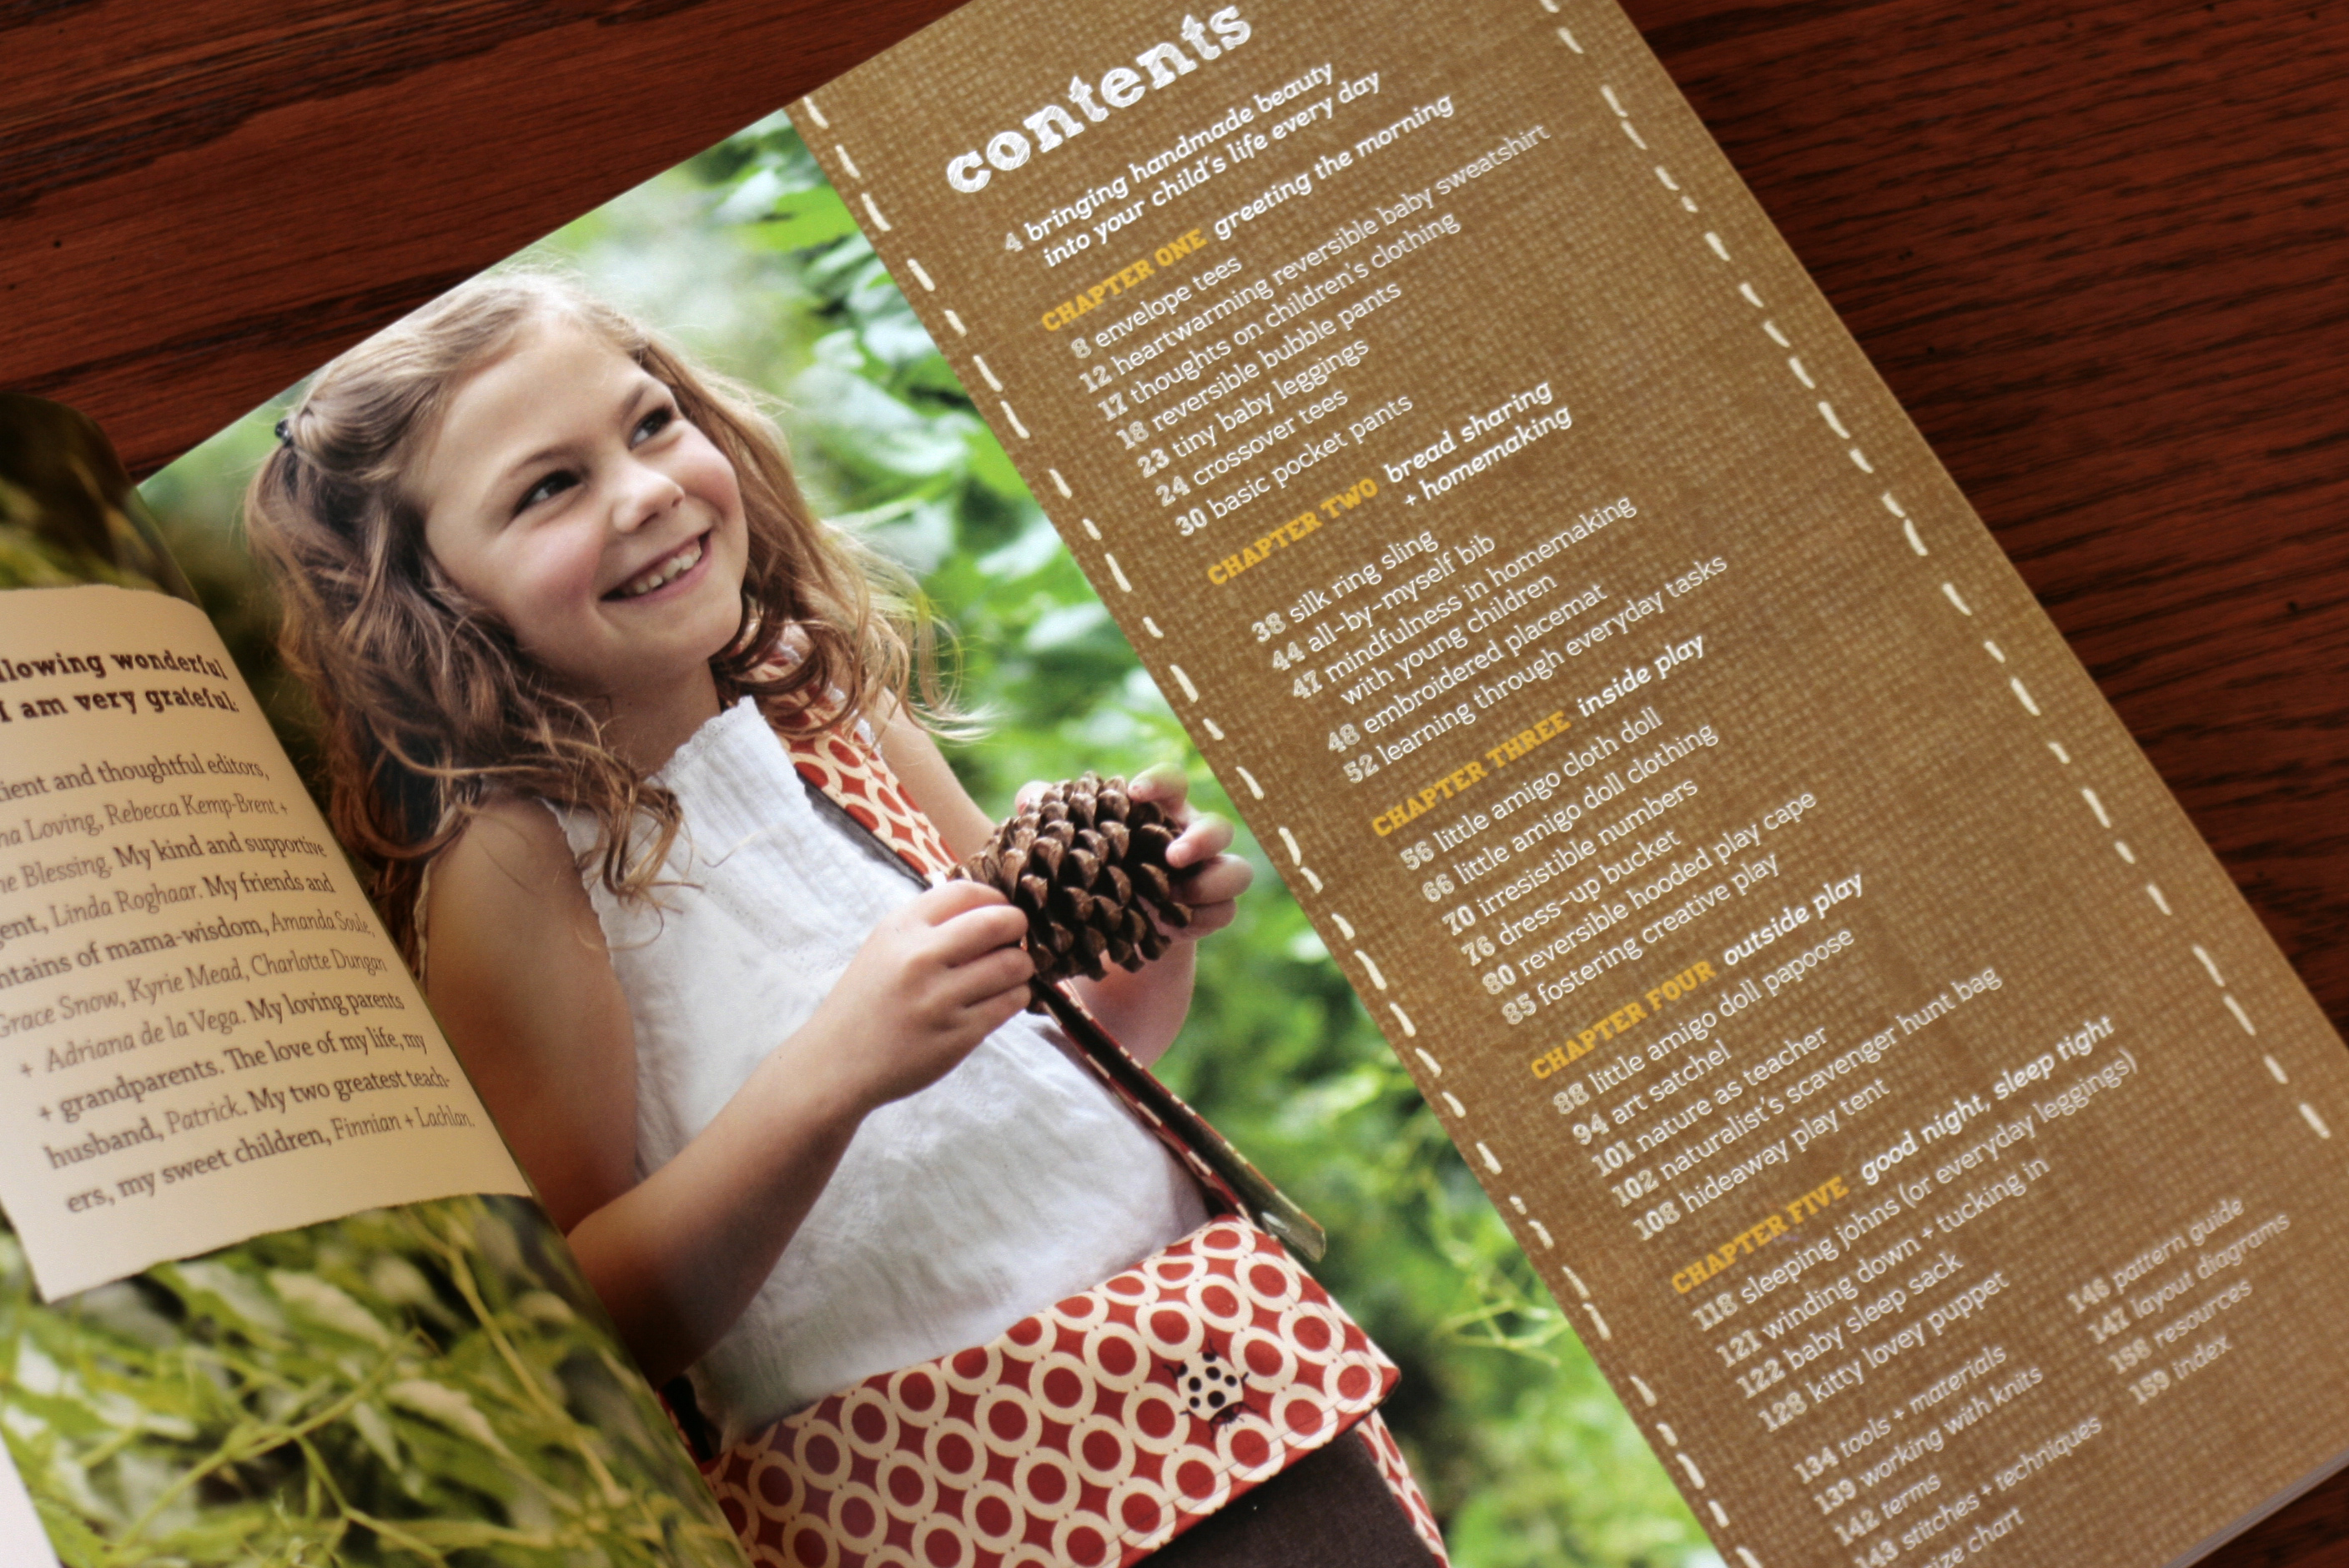 imgsrc.ru little 16 Book Review: Growing Up Sew Liberated